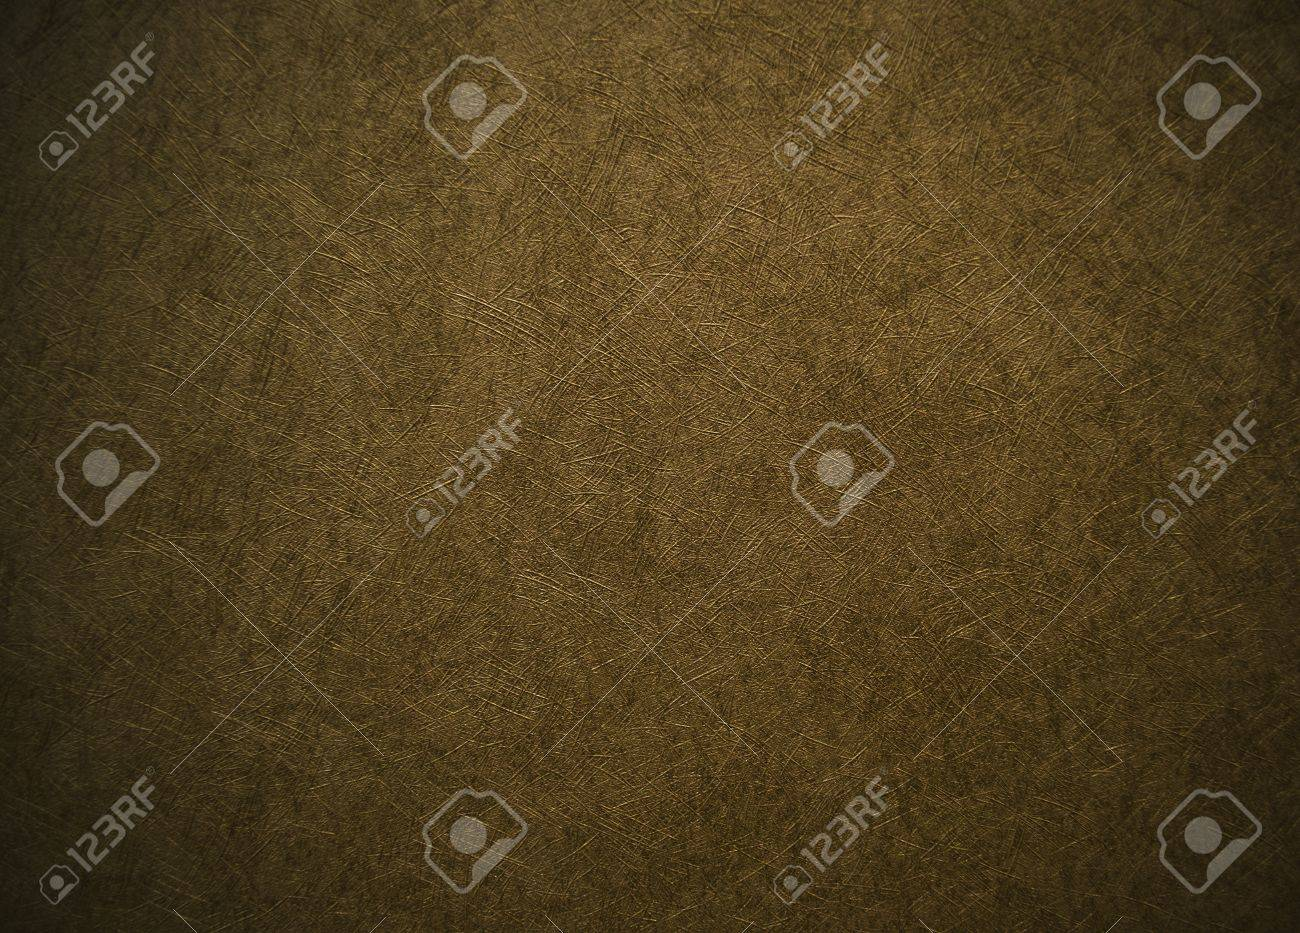 grunge background Stock Photo - 13482258